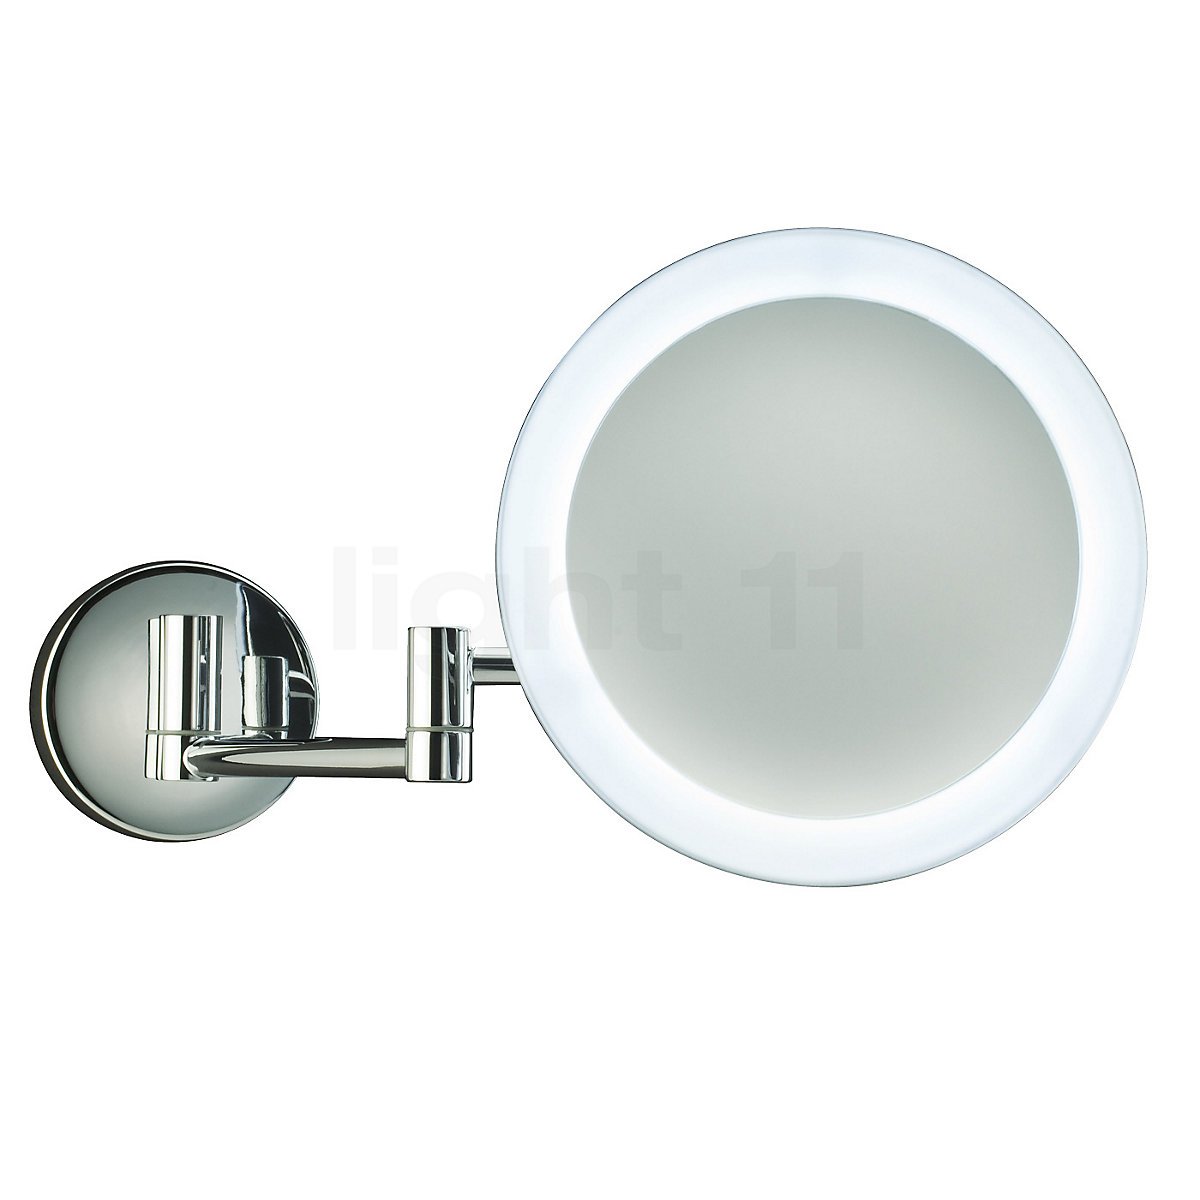 Image of: Buy Decor Walther Bs 60 N Wall Mounted Cosmetic Mirror Led At